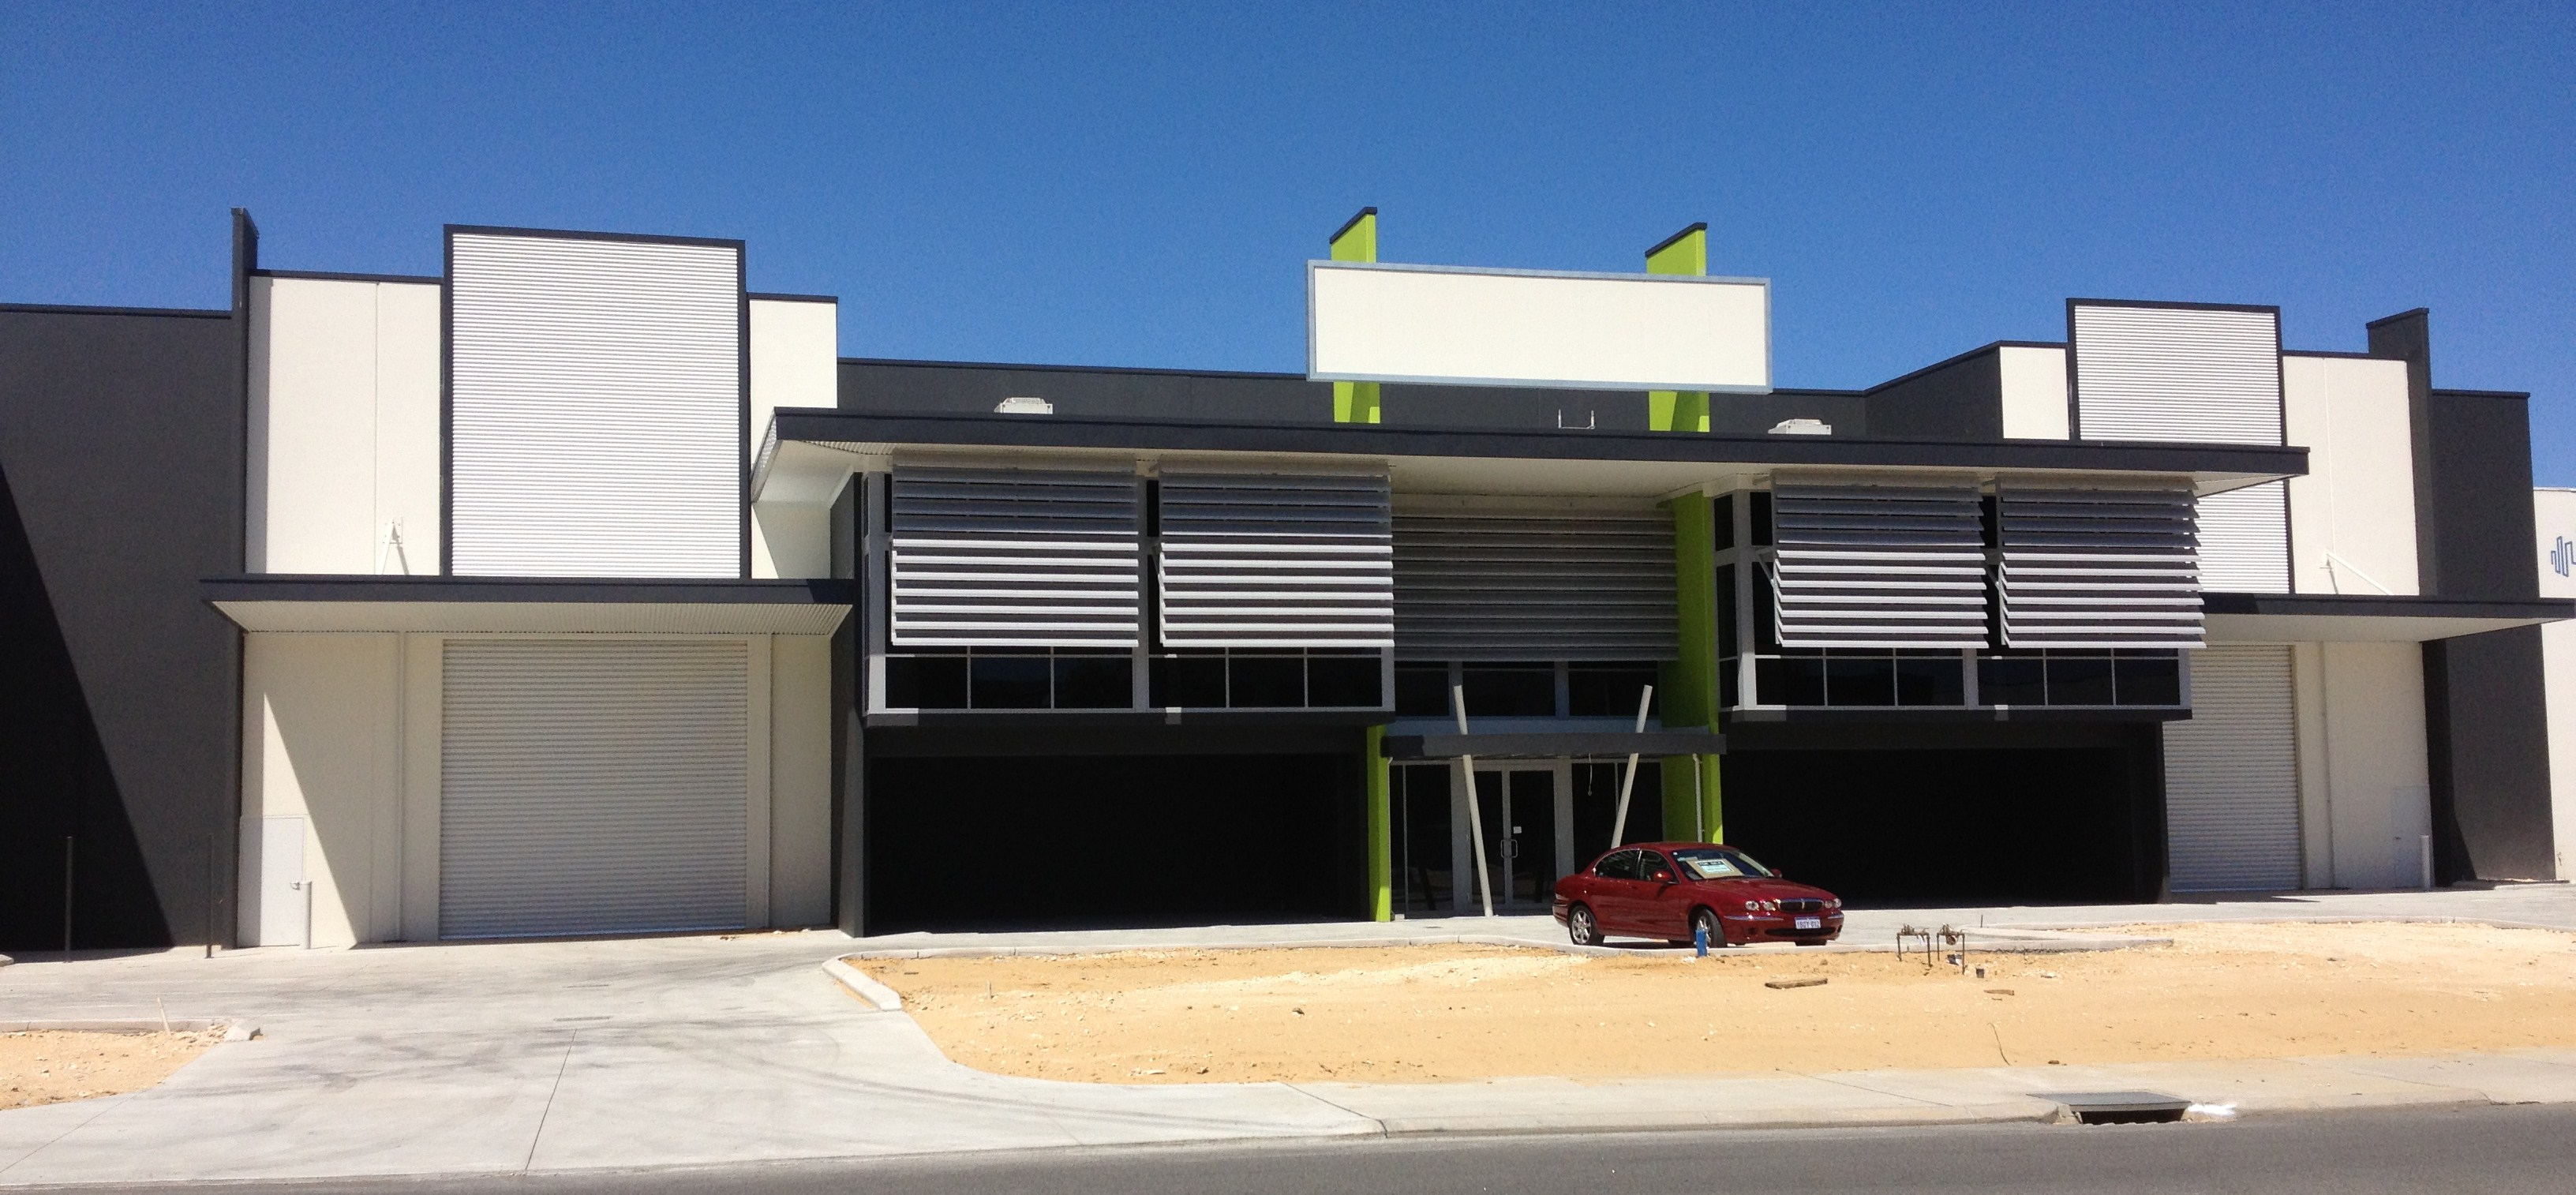 Exterior of large commercial warehouse units, painted in dark grey with lime accents.